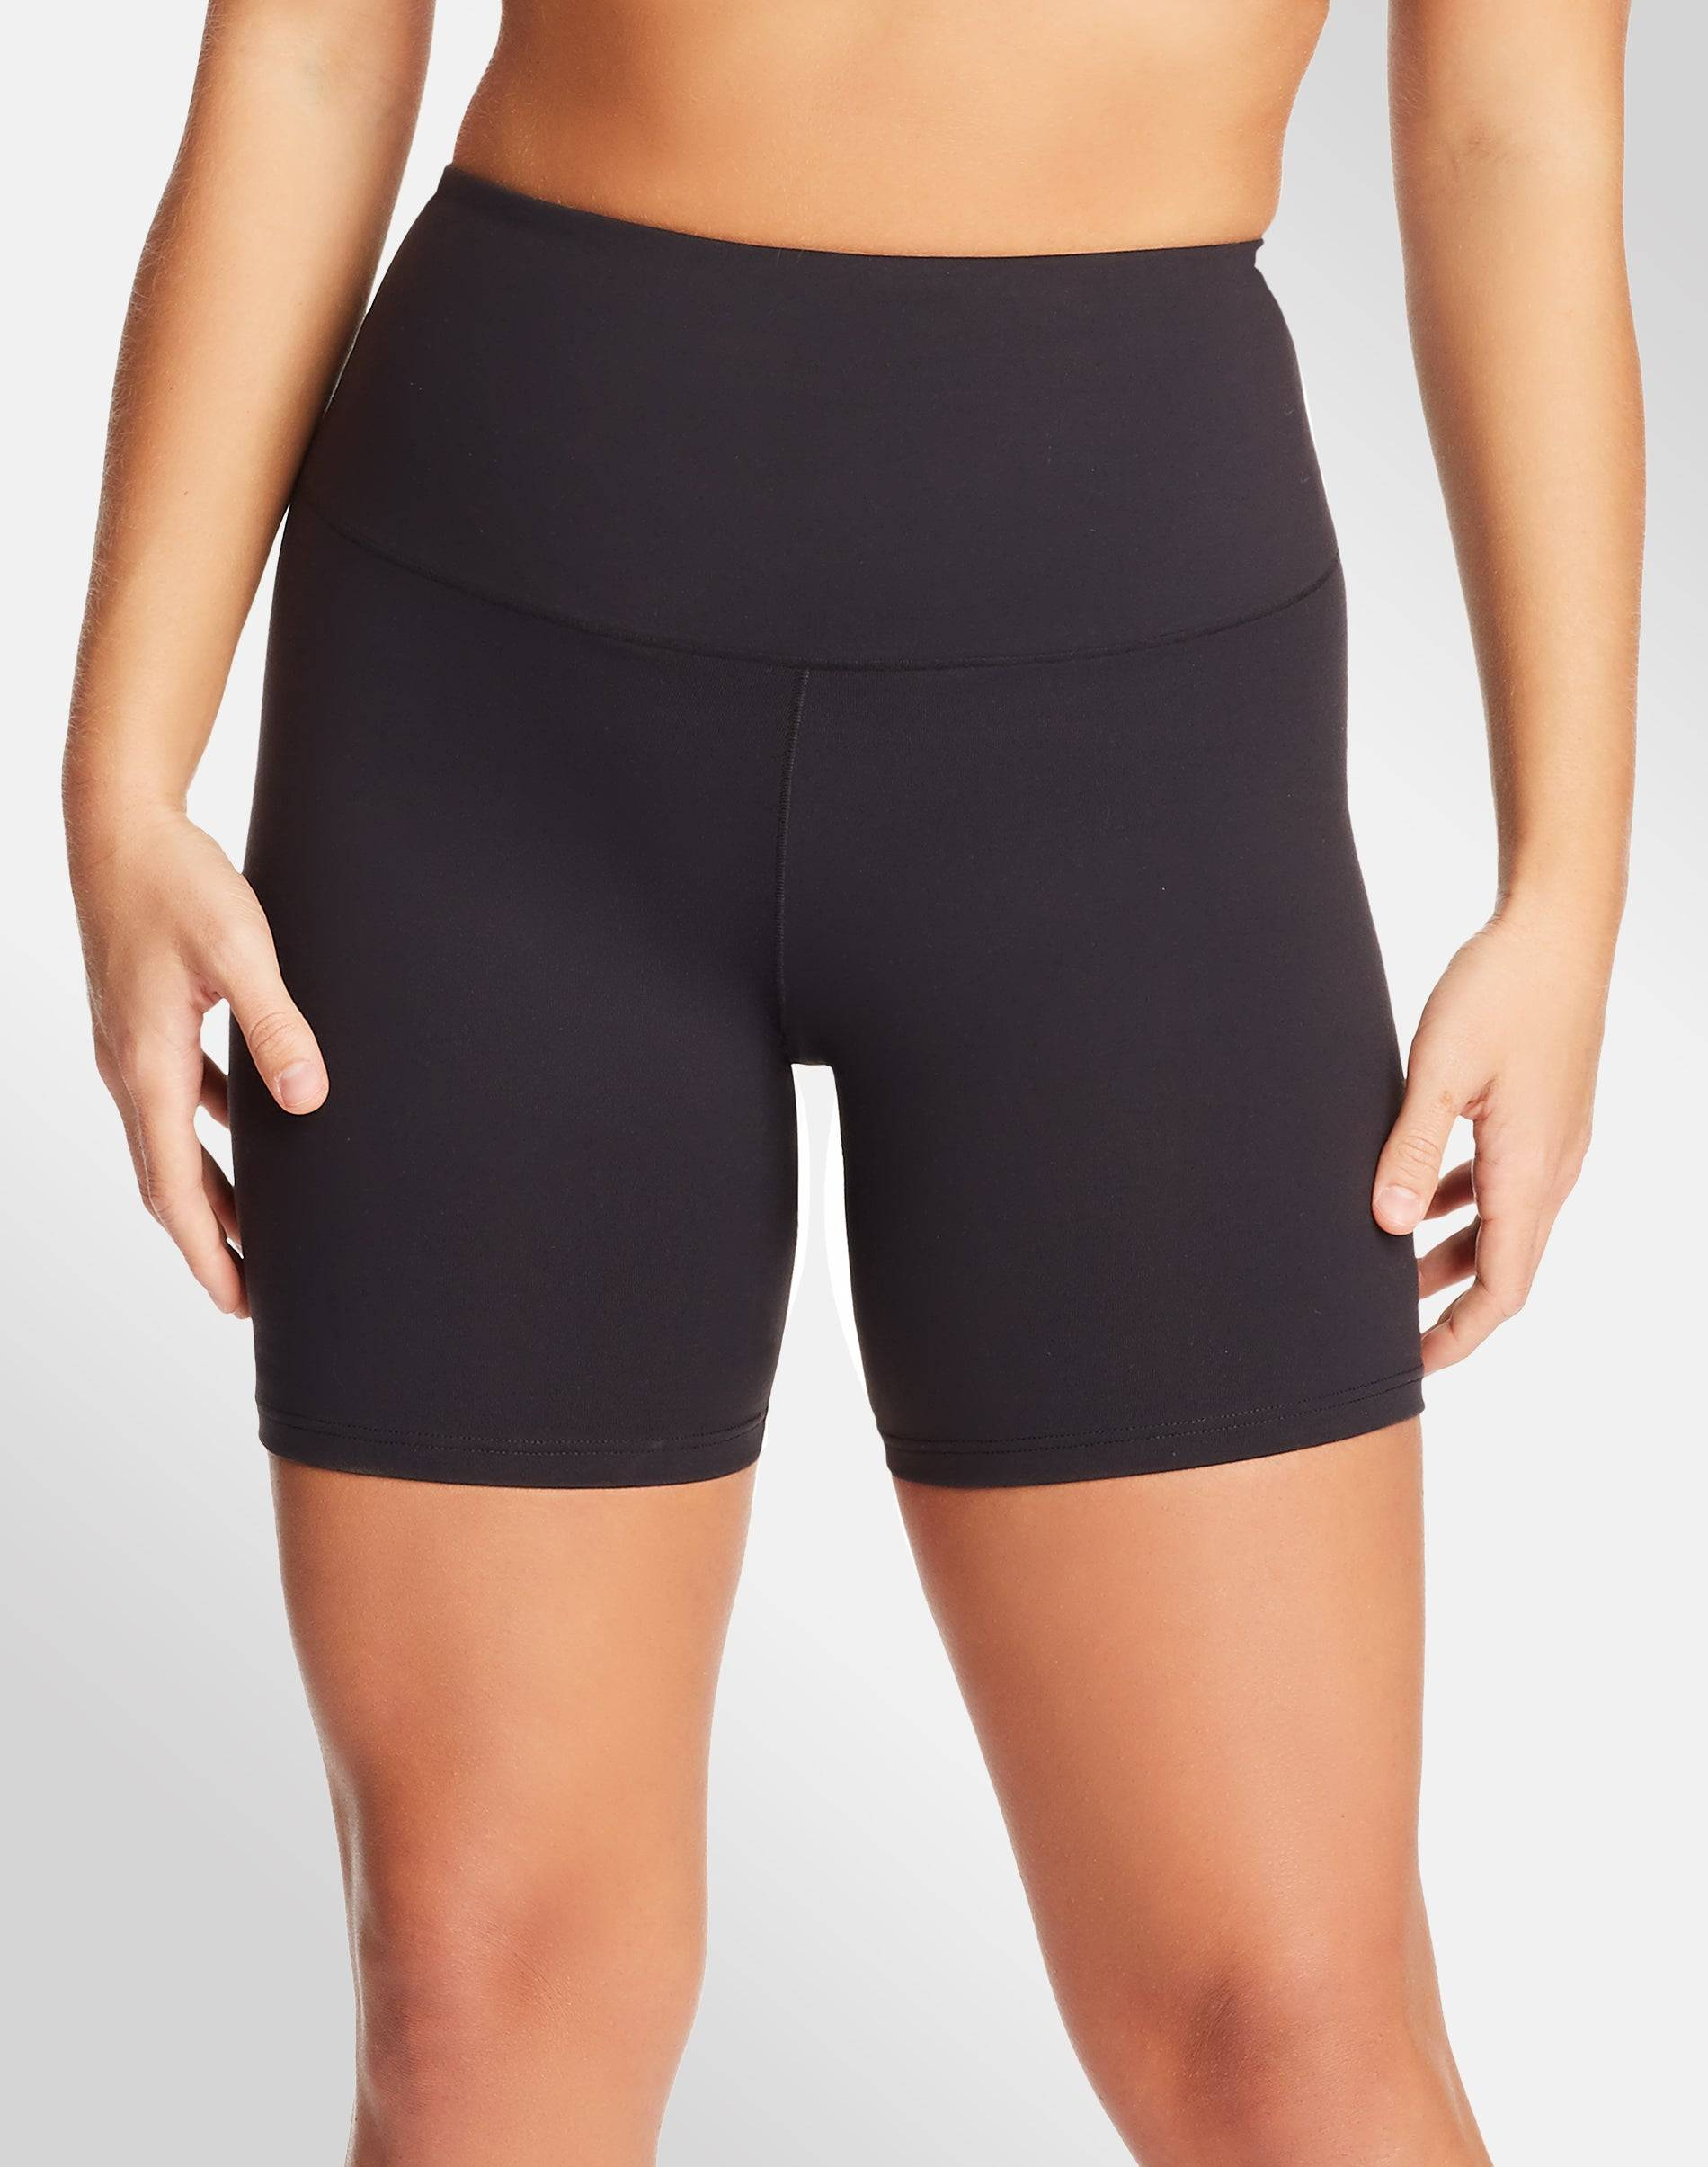 Maidenform Bike Short with Cool Comfort Black XL Women's